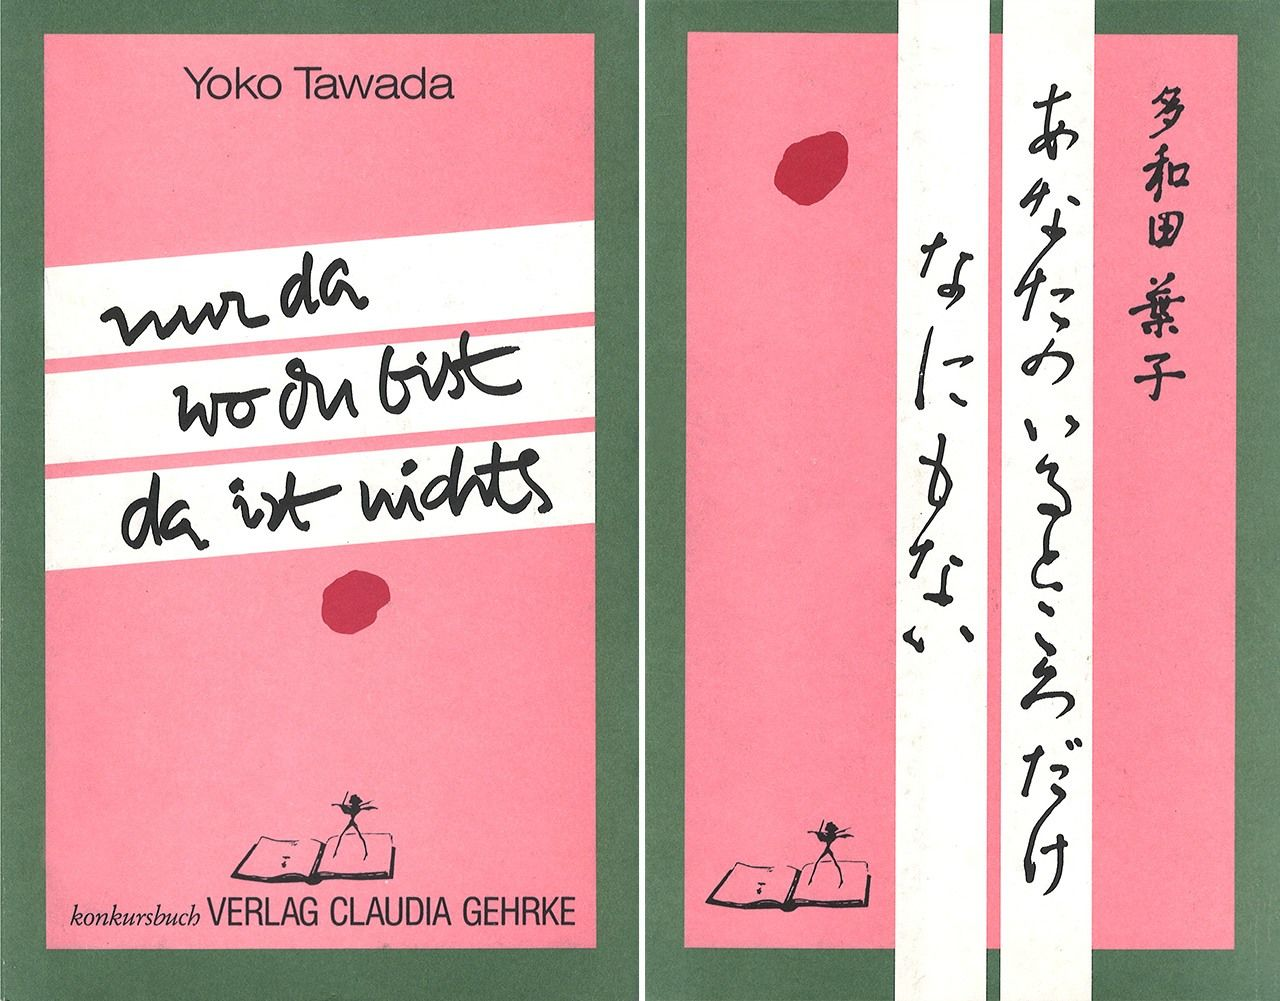 One book, two covers: the German and Japanese title pages of Tawada's first book, published in 1987, Nur da wo du bist da ist nichts (Nothing Only Where You Are).